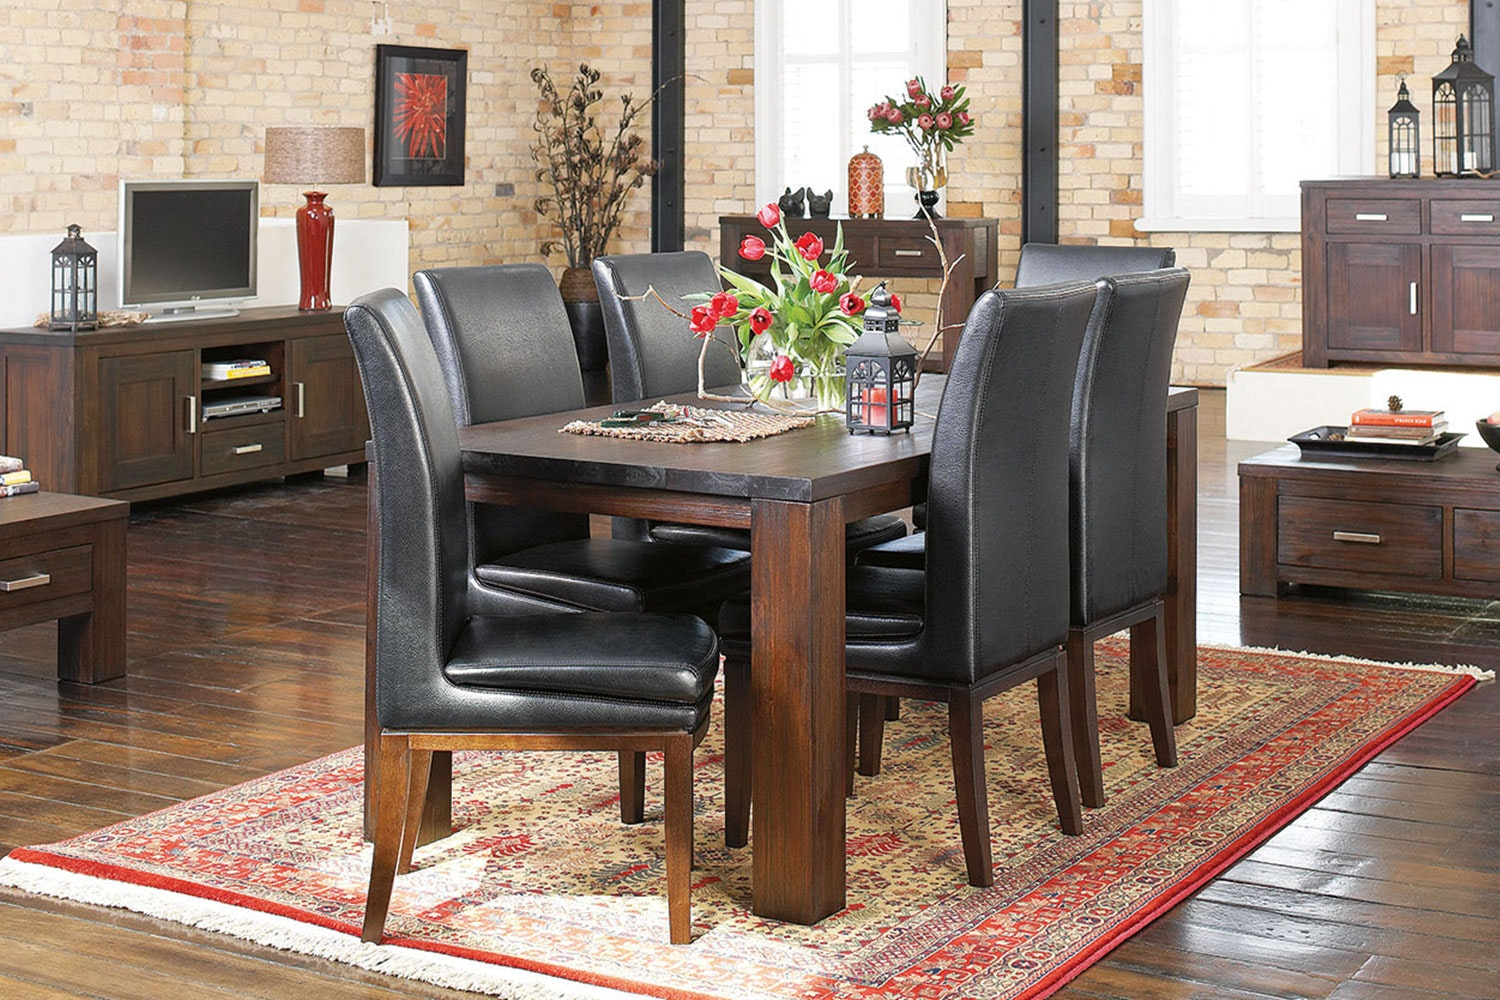 Milla 7 Piece Dining Suite by John Young Furniture